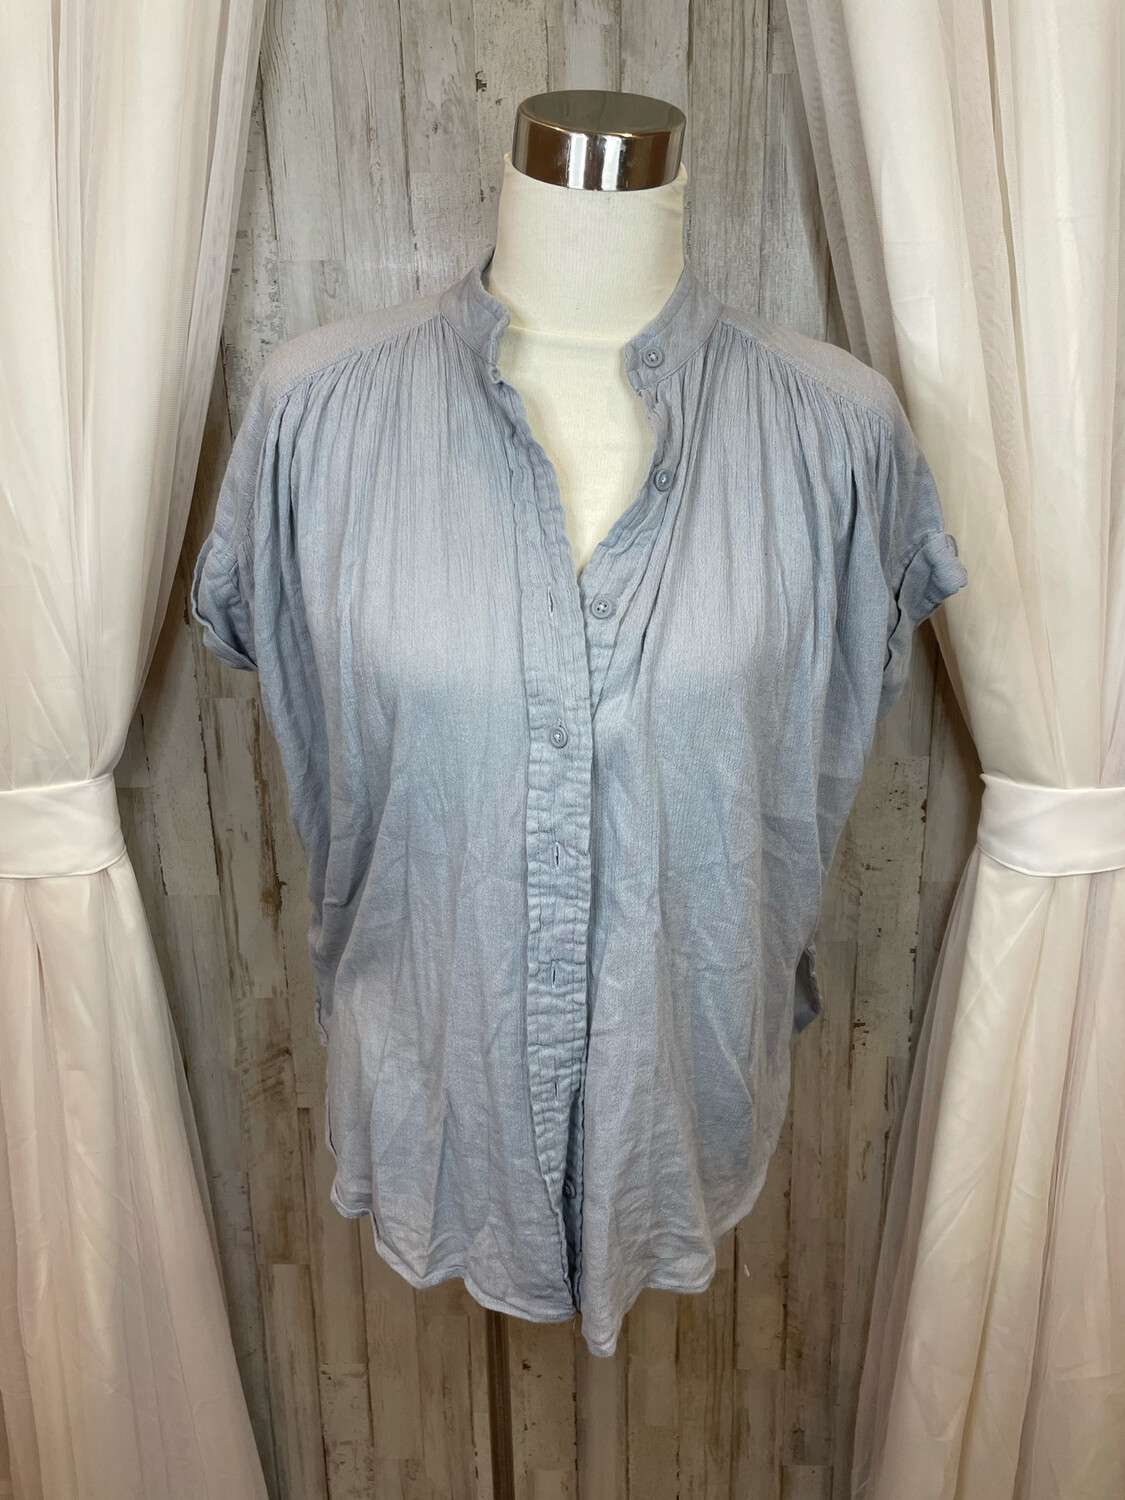 Silence + Noise Blue Button Up Top - M